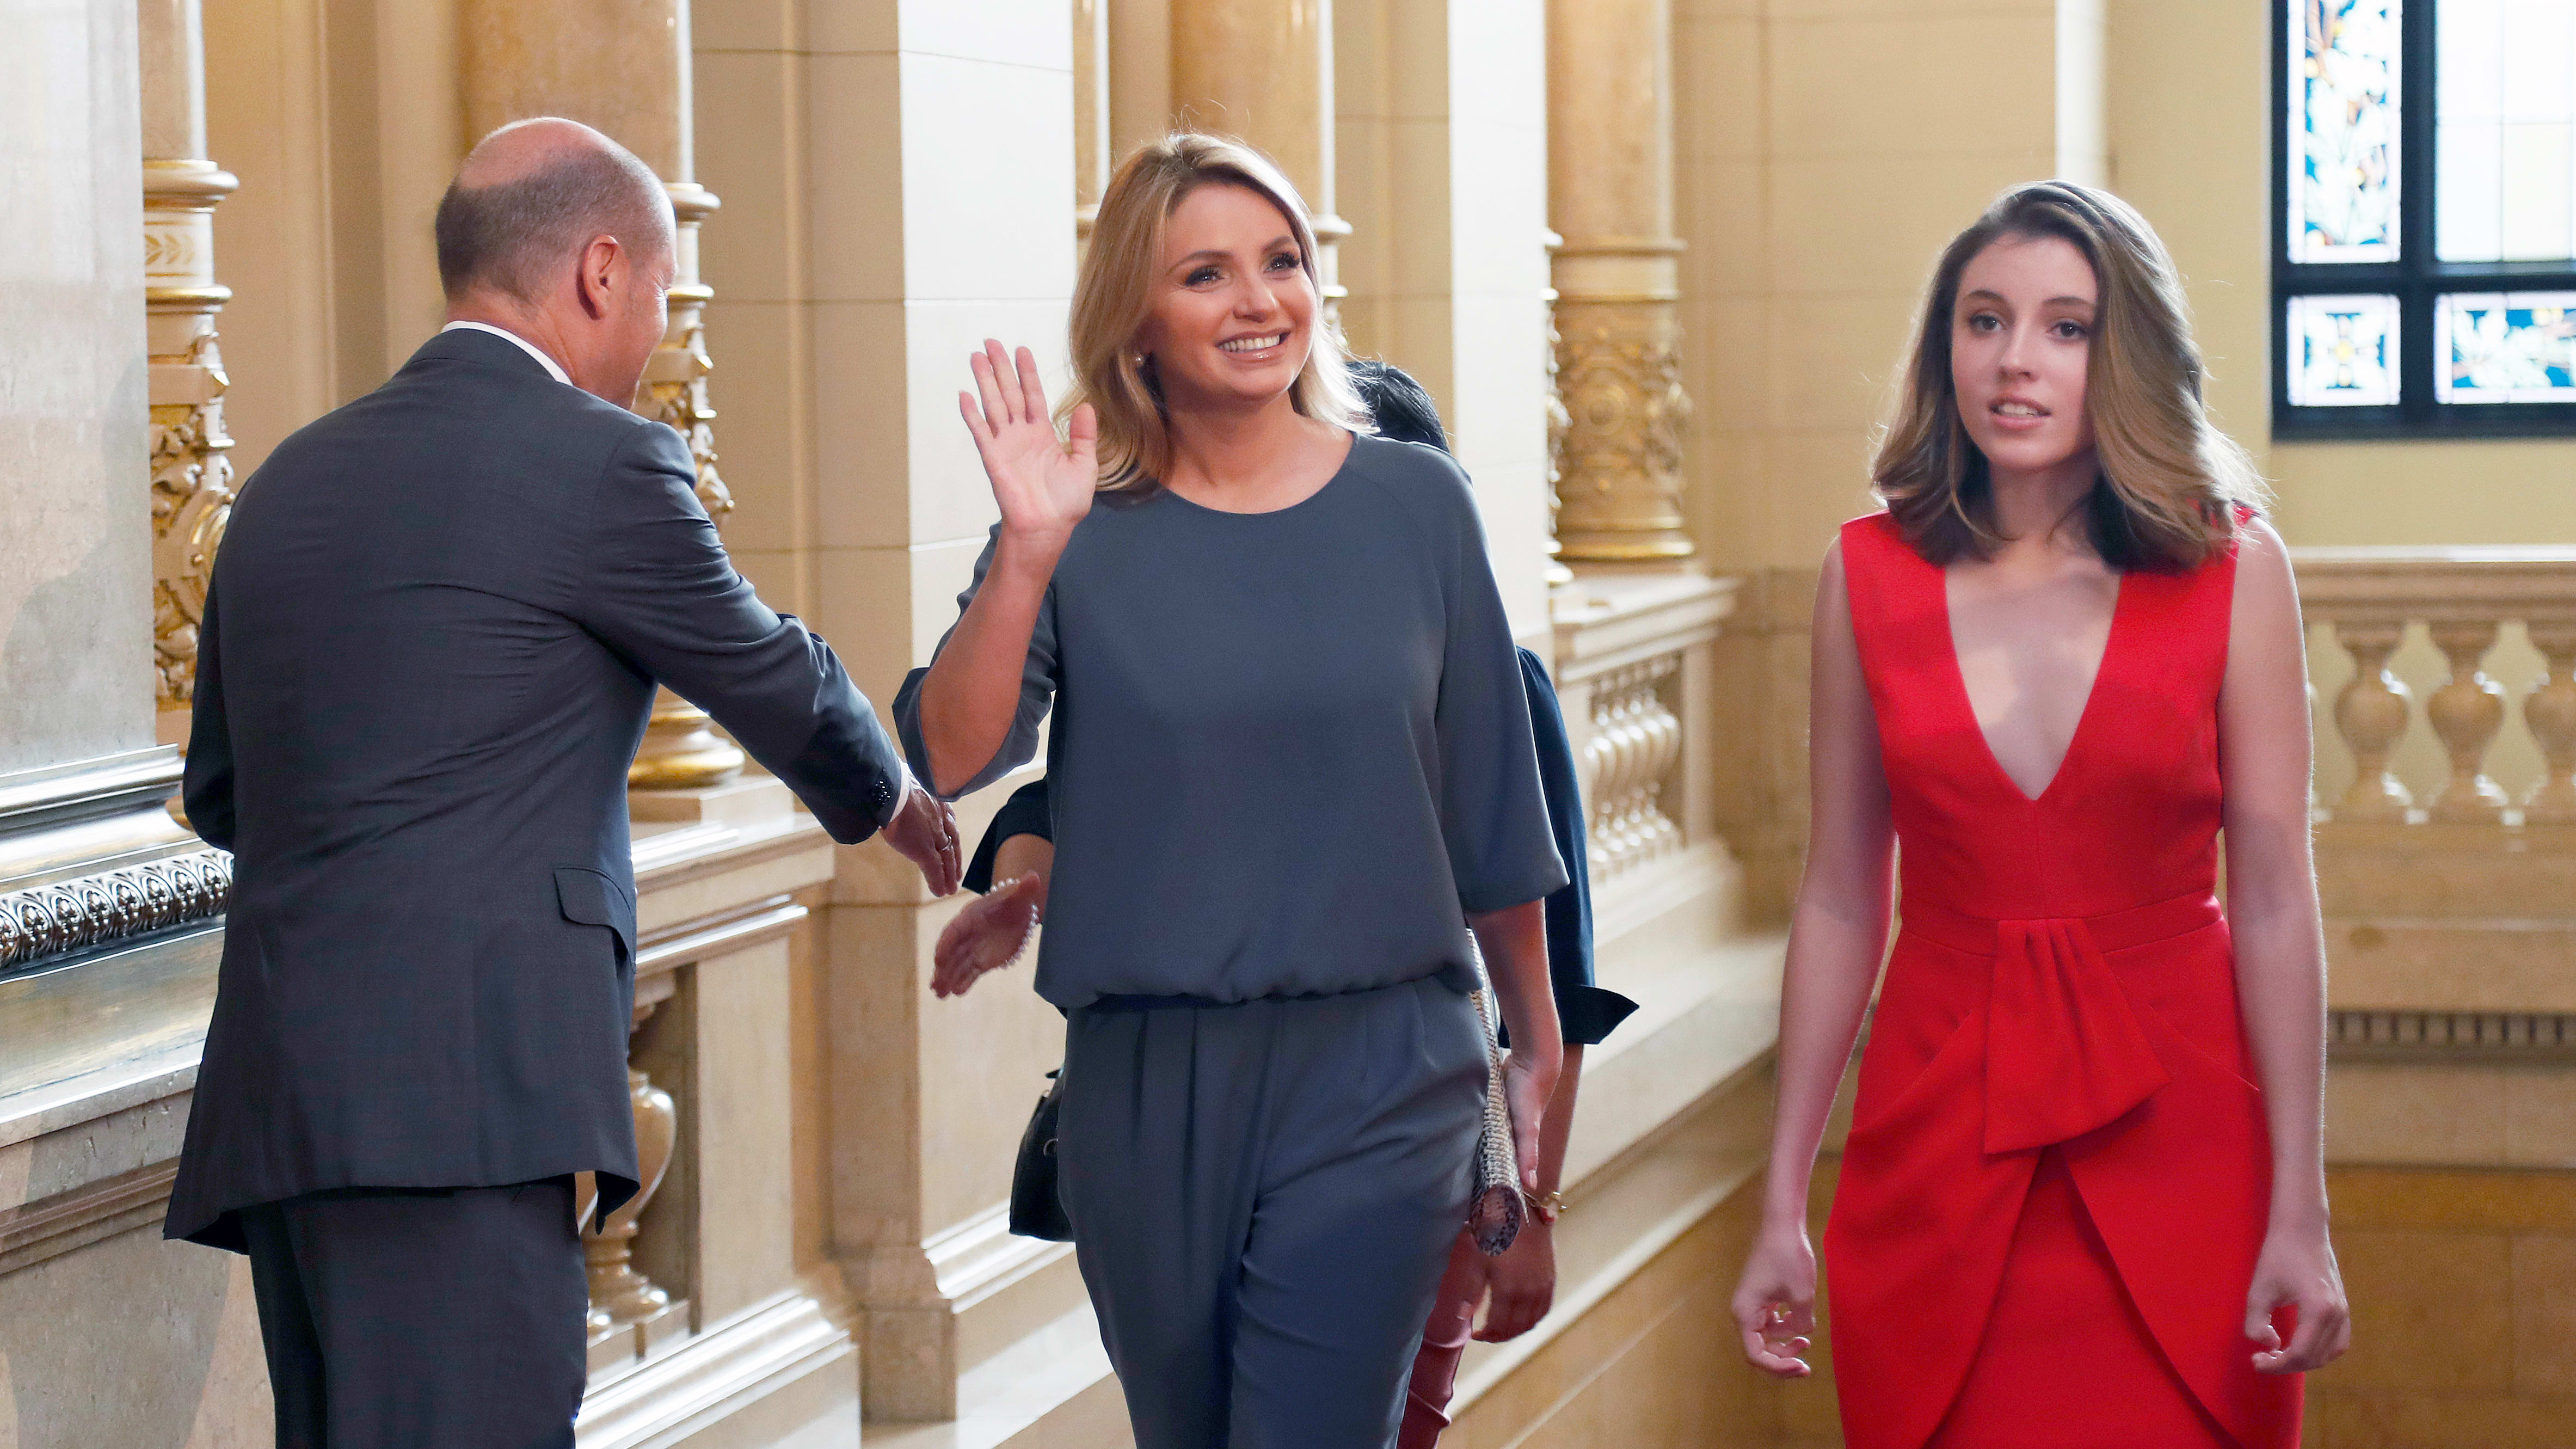 HAMBURG, GERMANY - JULY 08: First Mayor of Hamburg Olaf Scholz (L) welcomes Angelica Rivera (C), partner of Mexico's President Enrique Pena Nieto, and her daughter Regina Castro (R) during the partner program of G20 summit at the Hamburg Town Hall prior to the partner program of G20 summit on the second day of the G20 summit on July 8, 2017 in Hamburg, Germany. Leaders of the G20 group of nations are meeting for the July 7-8 summit. Topics high on the agenda for the summit include climate policy and development programs for African economies.  (Photo by Friedemann Vogel - Pool/Getty Images)